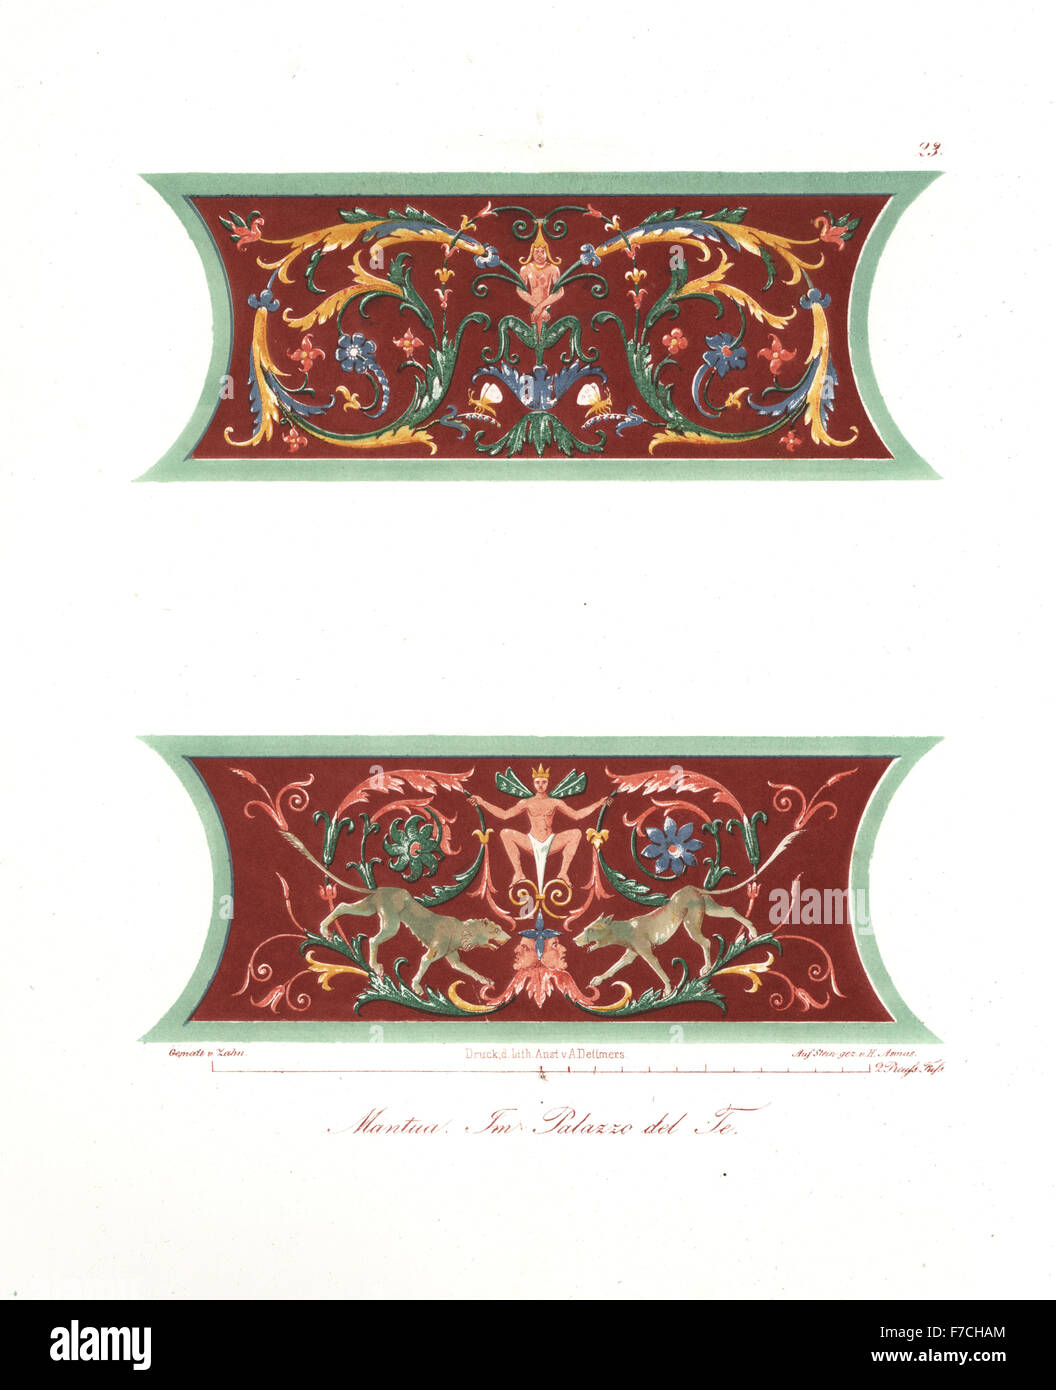 Wall paintings from the Palazzo del Te, Mantua, Italy. Handcoloured lithograph by H. Asmus after an illustration - Stock Image